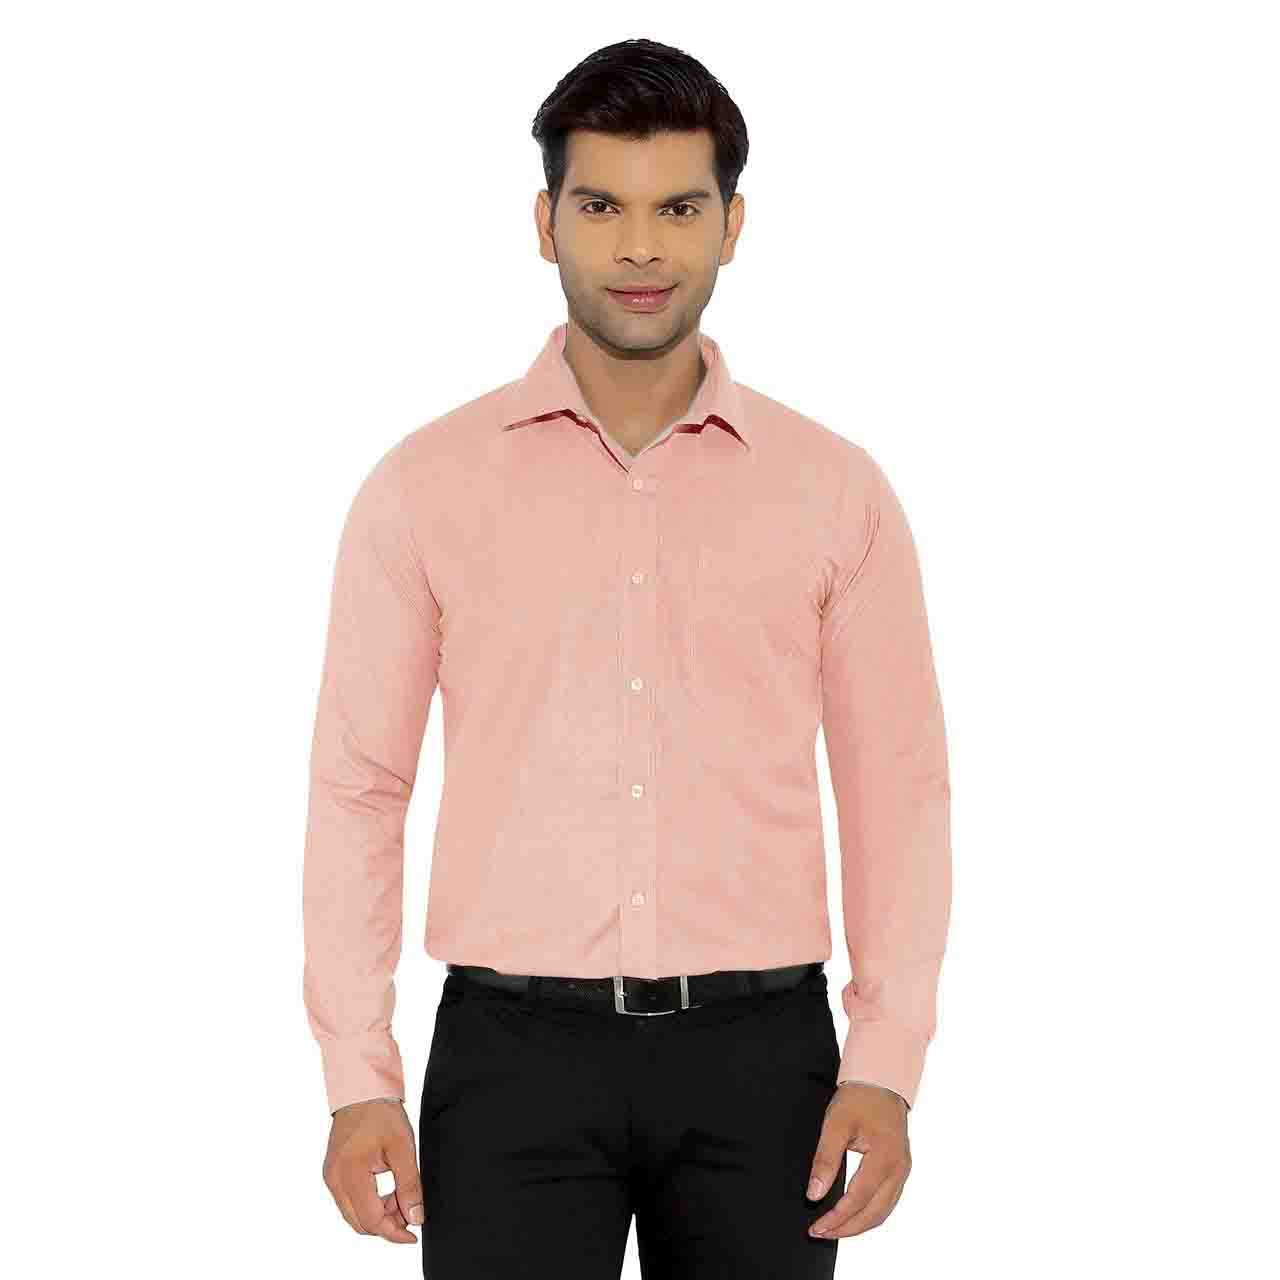 ECOZ -414 -PEACH PLAIN FORMAL SHIRT